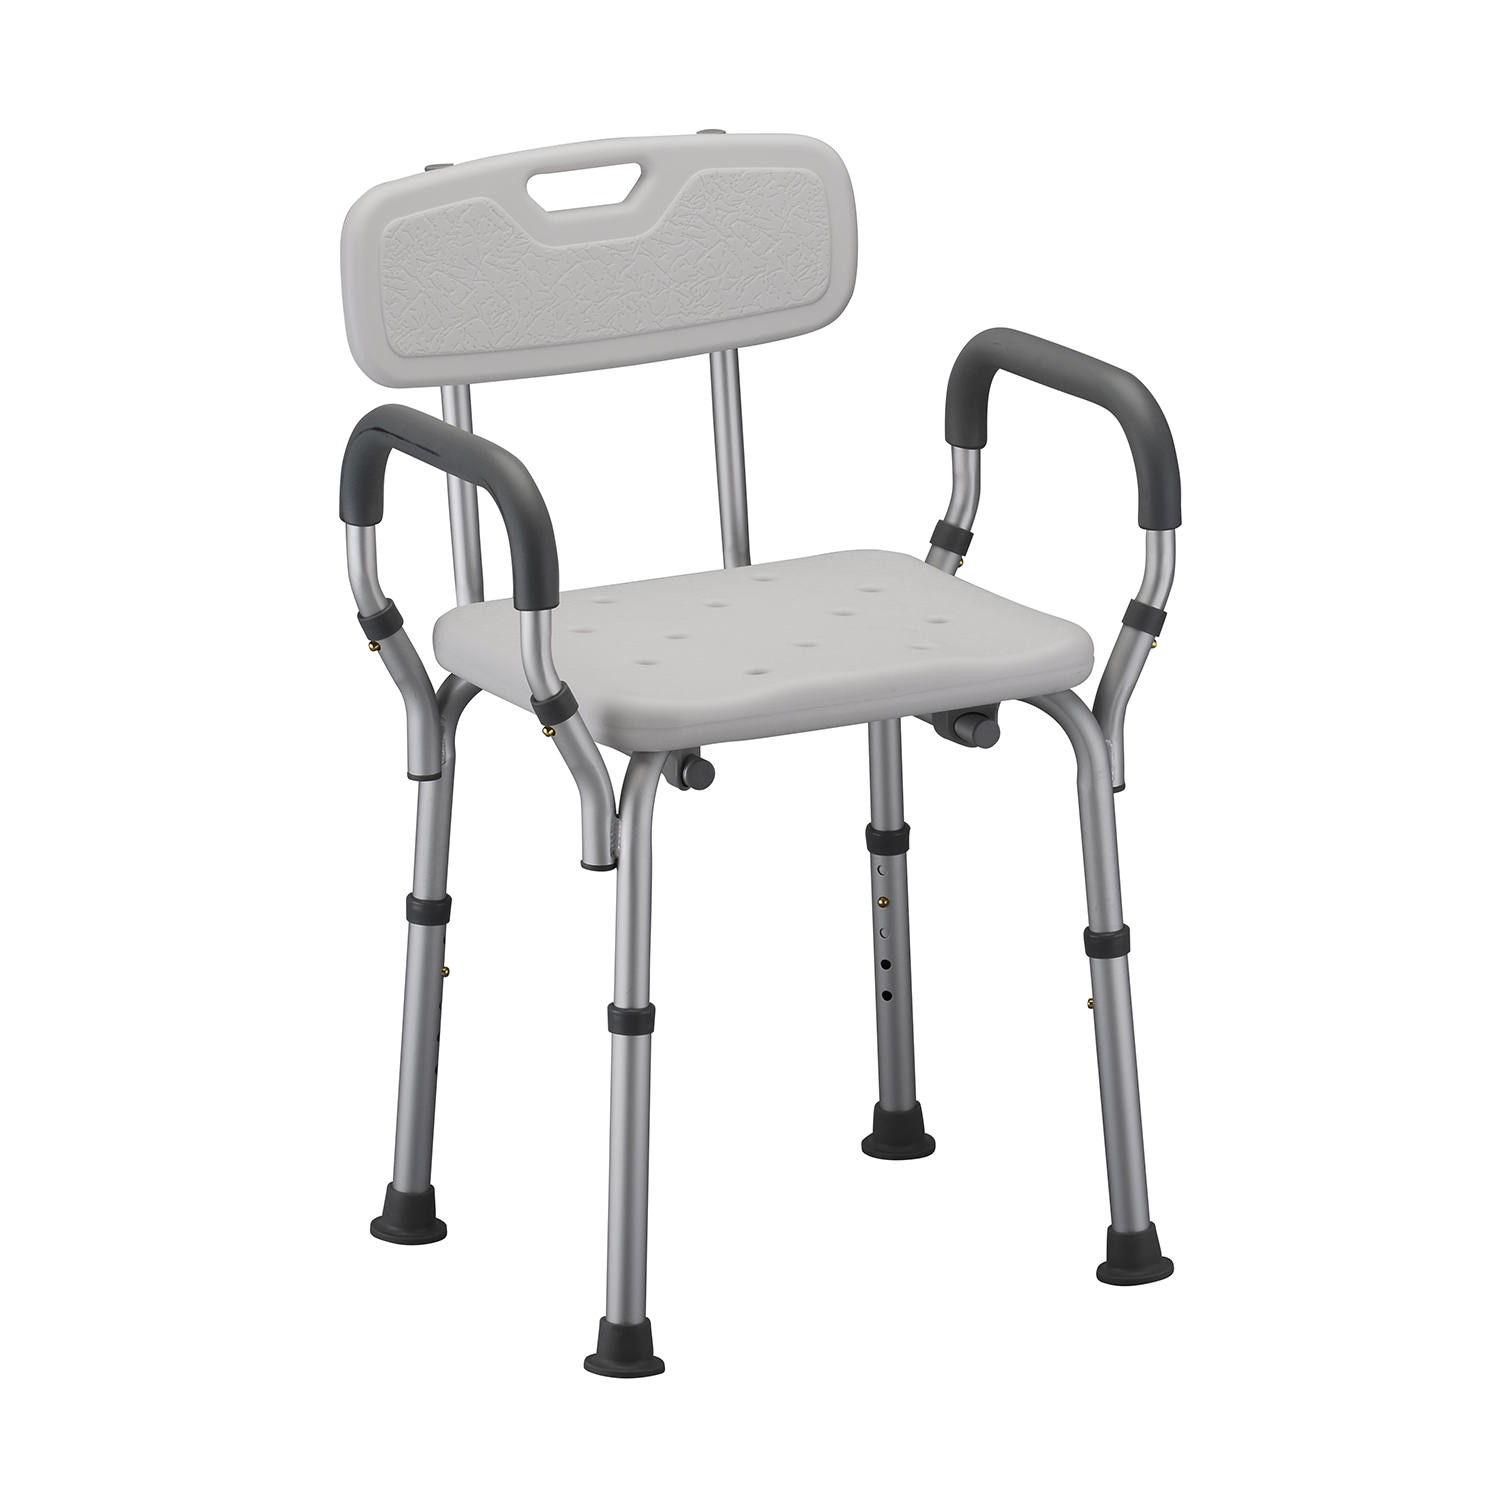 Nova Bath Seat with Arms and Back 9026 from 4MD Medical